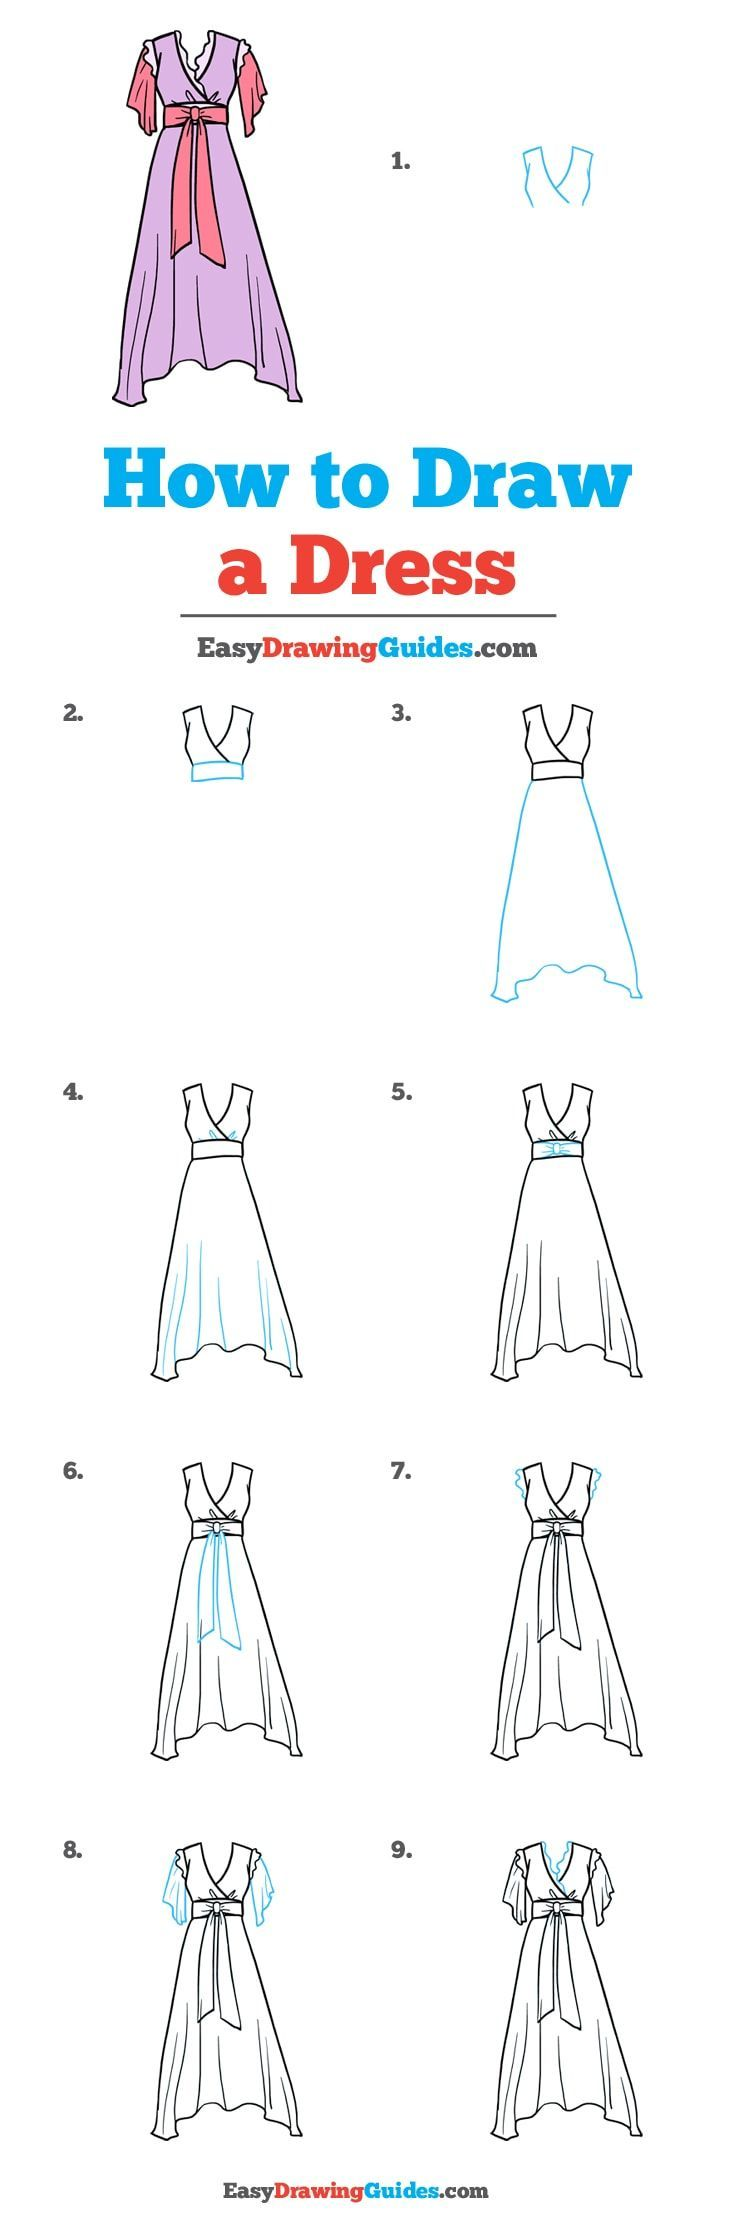 how to draw a dress step by step